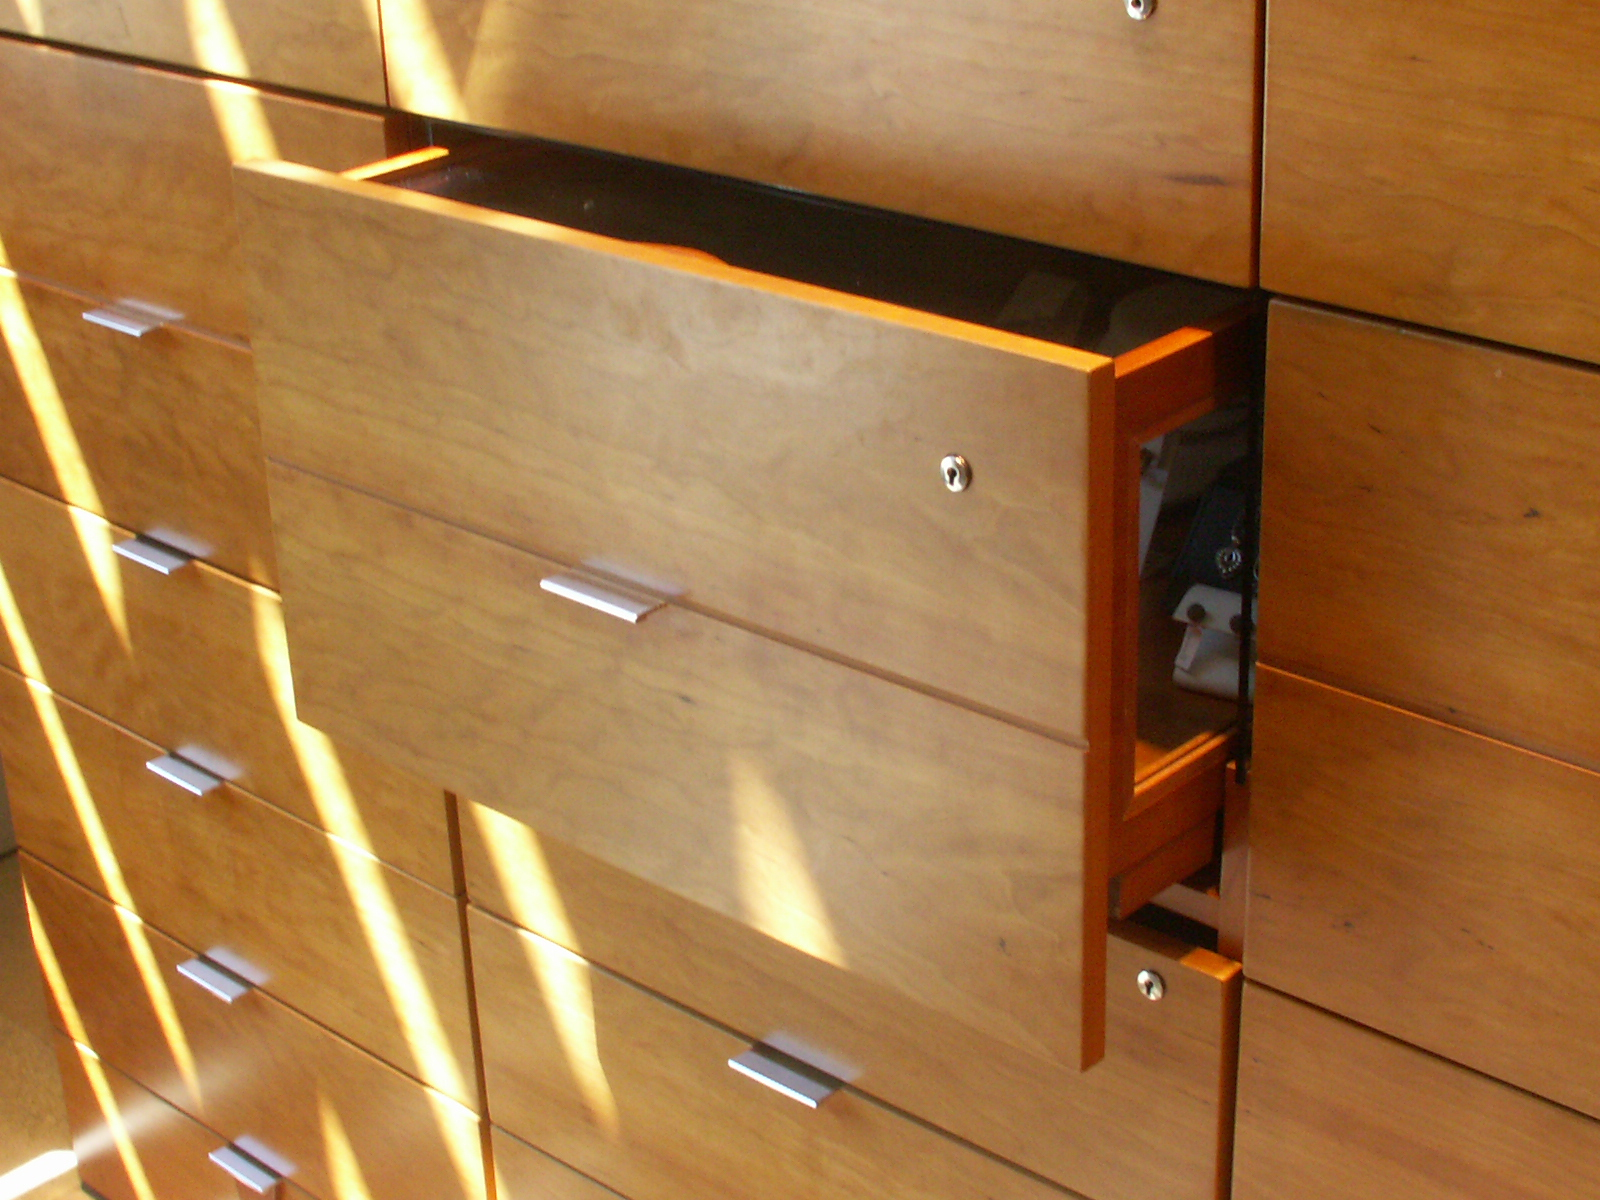 Fixing Sticky Drawers on Furniture